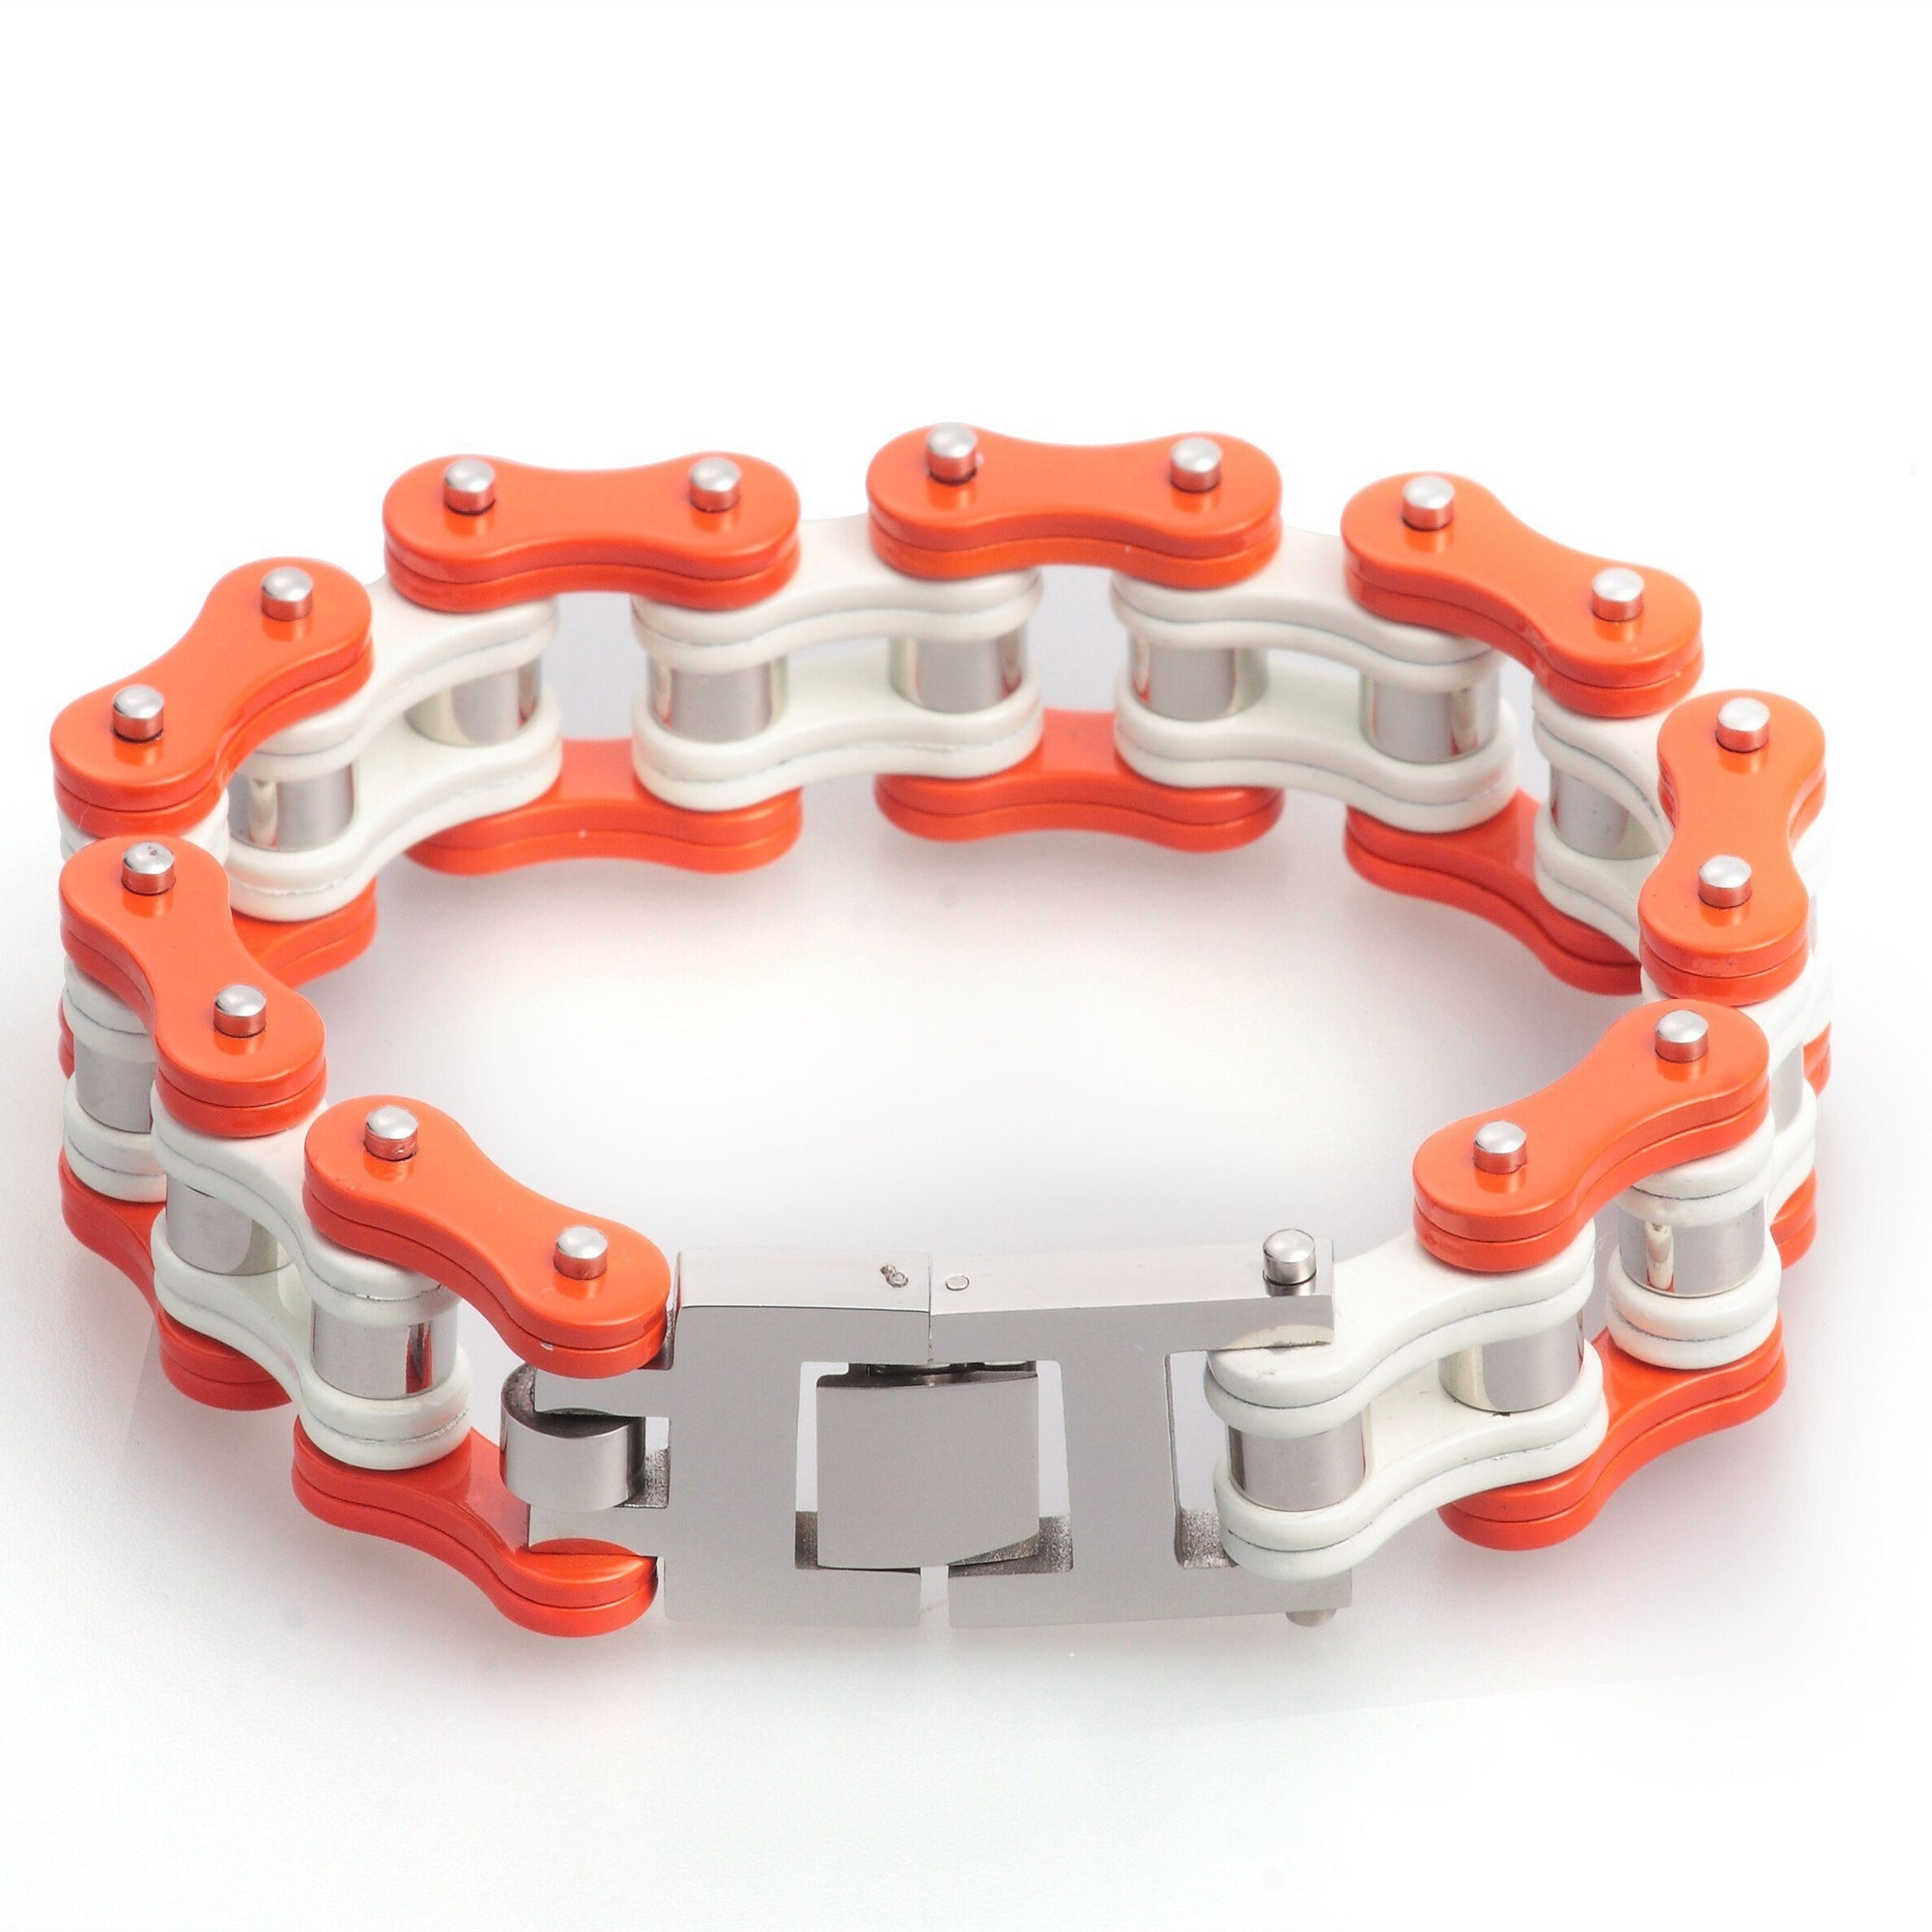 Bracelet Chaîne Moto Orange - Homme Bracelet Goodz.world 19 cm